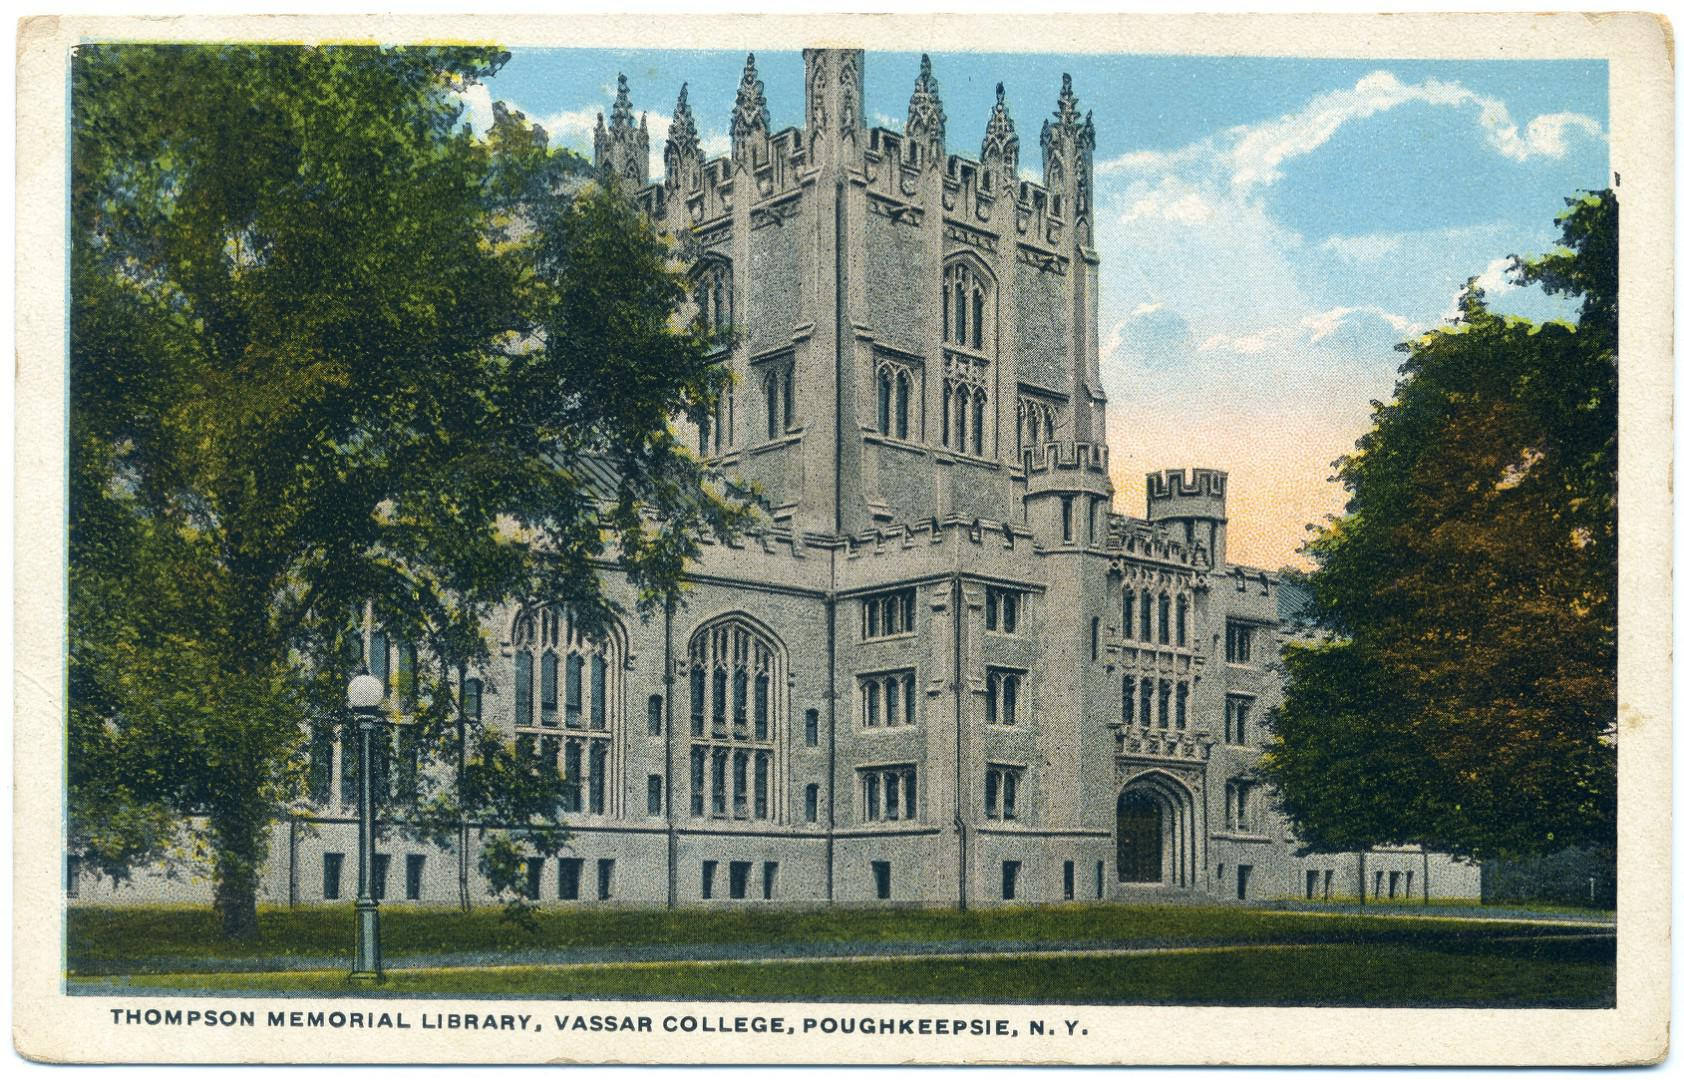 Poughkeepsie: Vassar College, Thompson Memorial Library